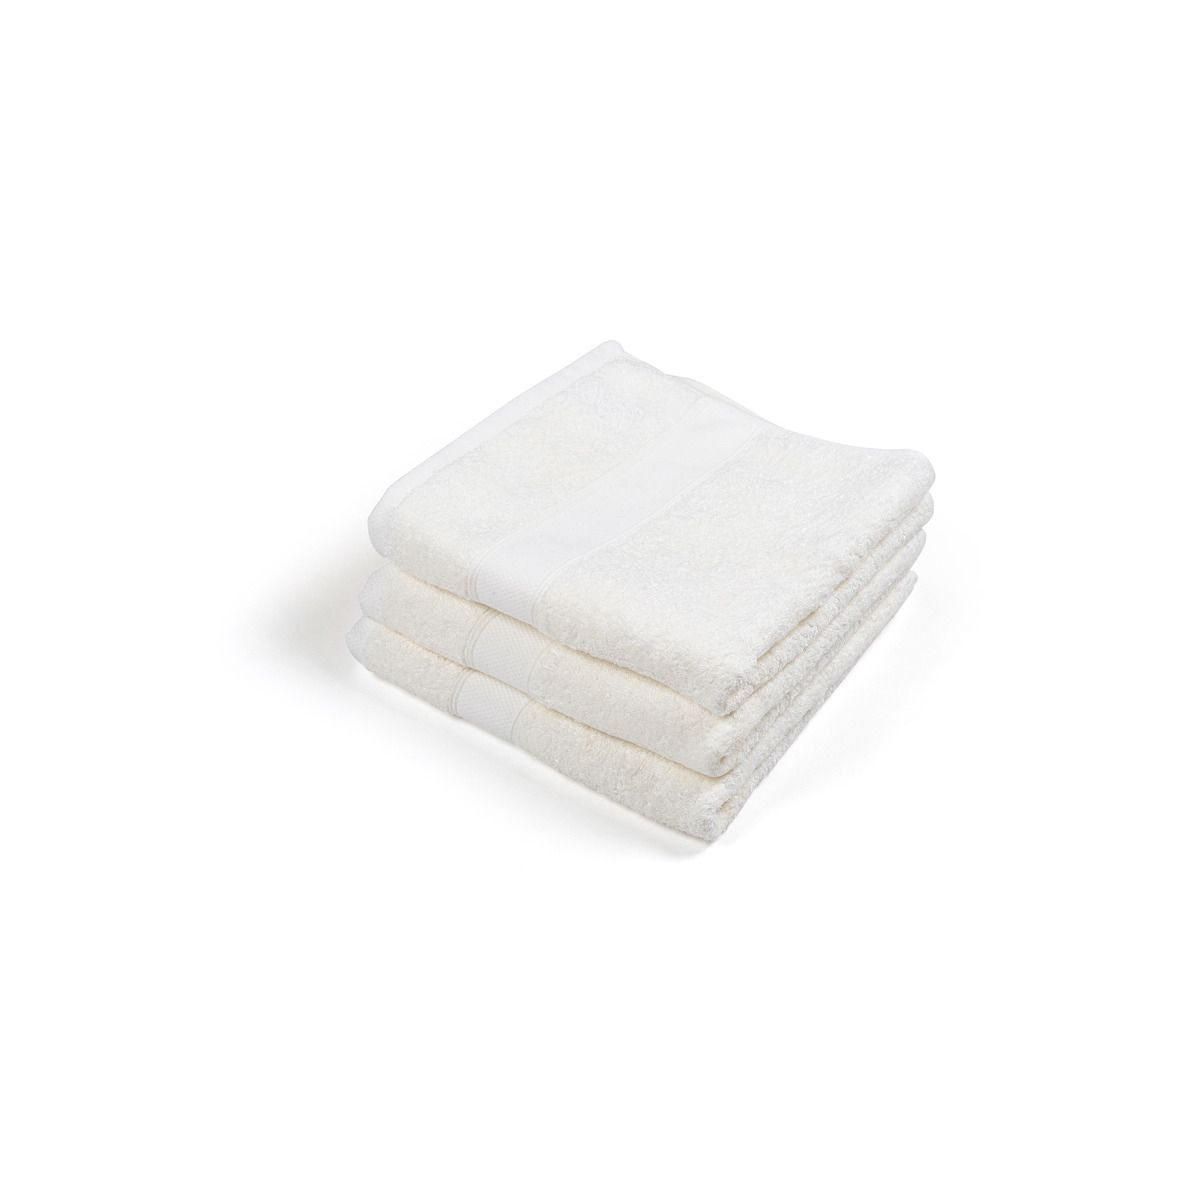 simi bath towel, libeco, bath towel, - adorn.house